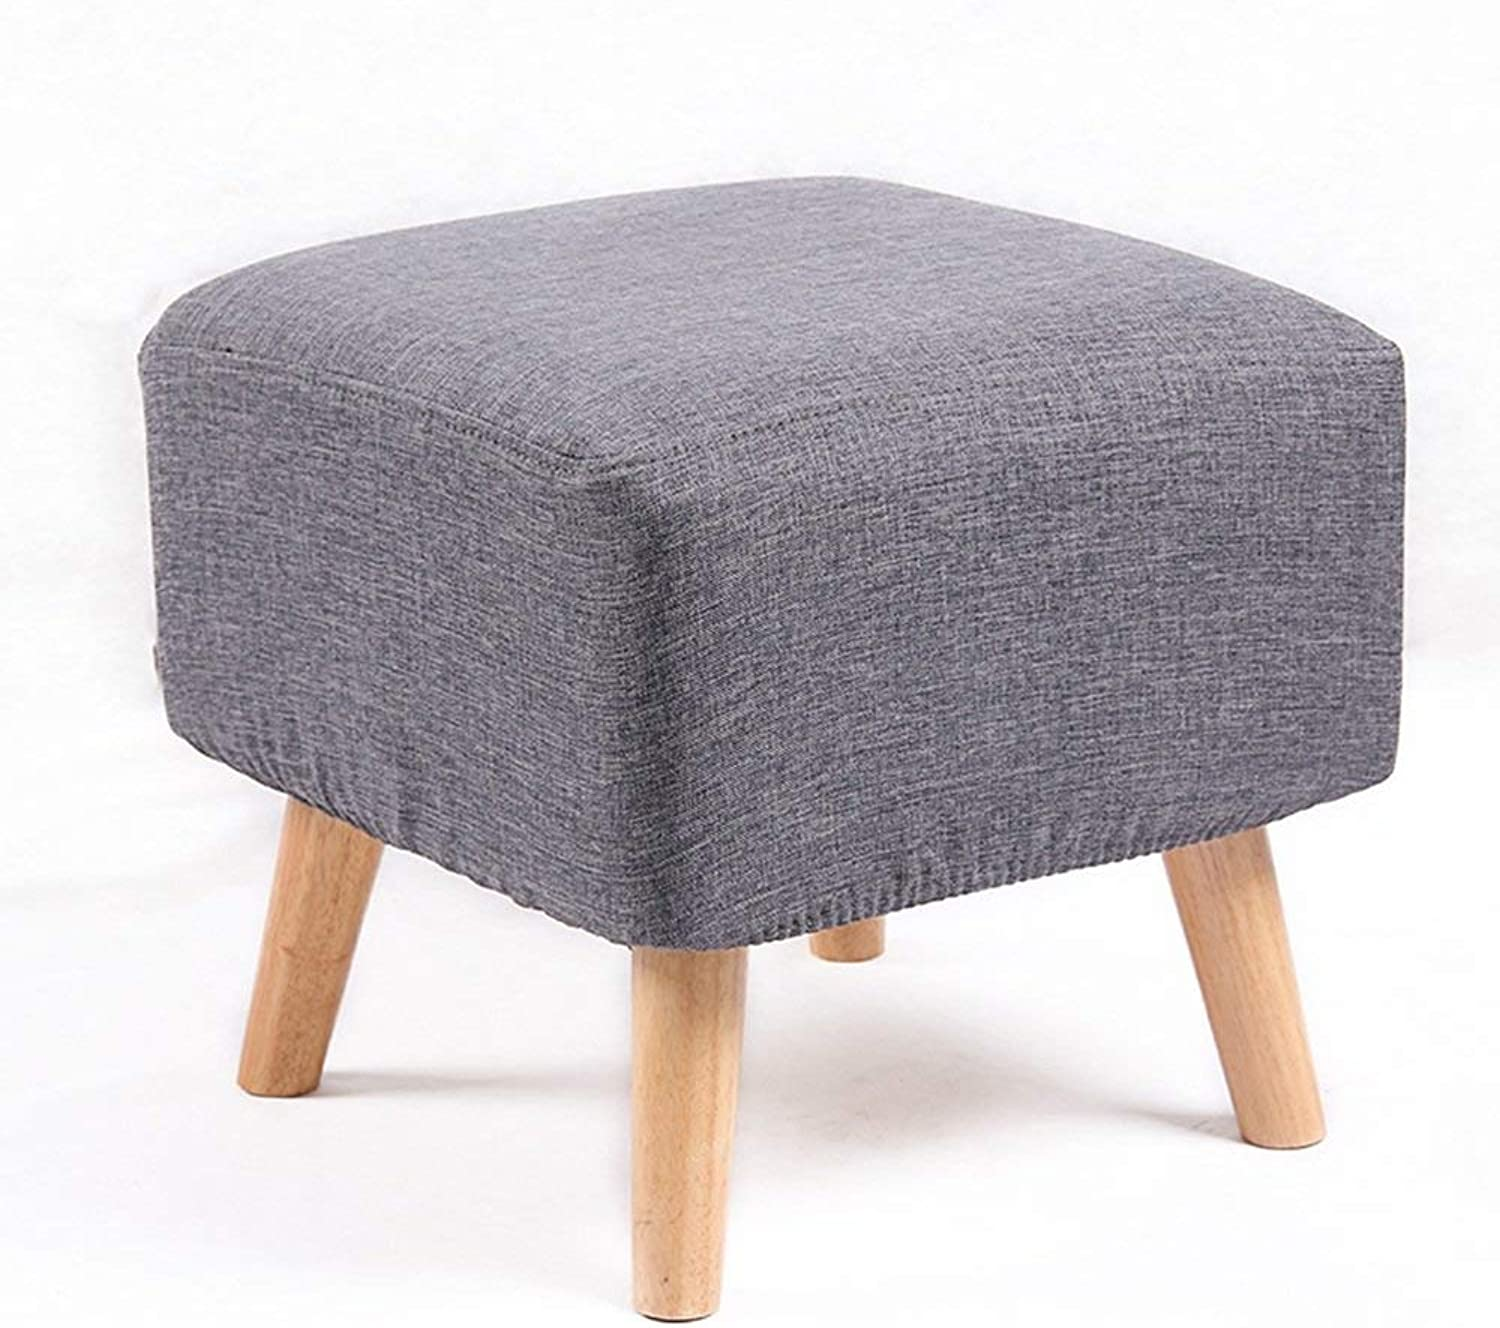 QTQZ Brisk- Solid Wood shoes Footstool European Clothing Store; ft Sofa Stool Fashion Dressing Bed Tail Stool Test shoes Small Long Stool Pier Sofa Stool (color Optional) (color  2)